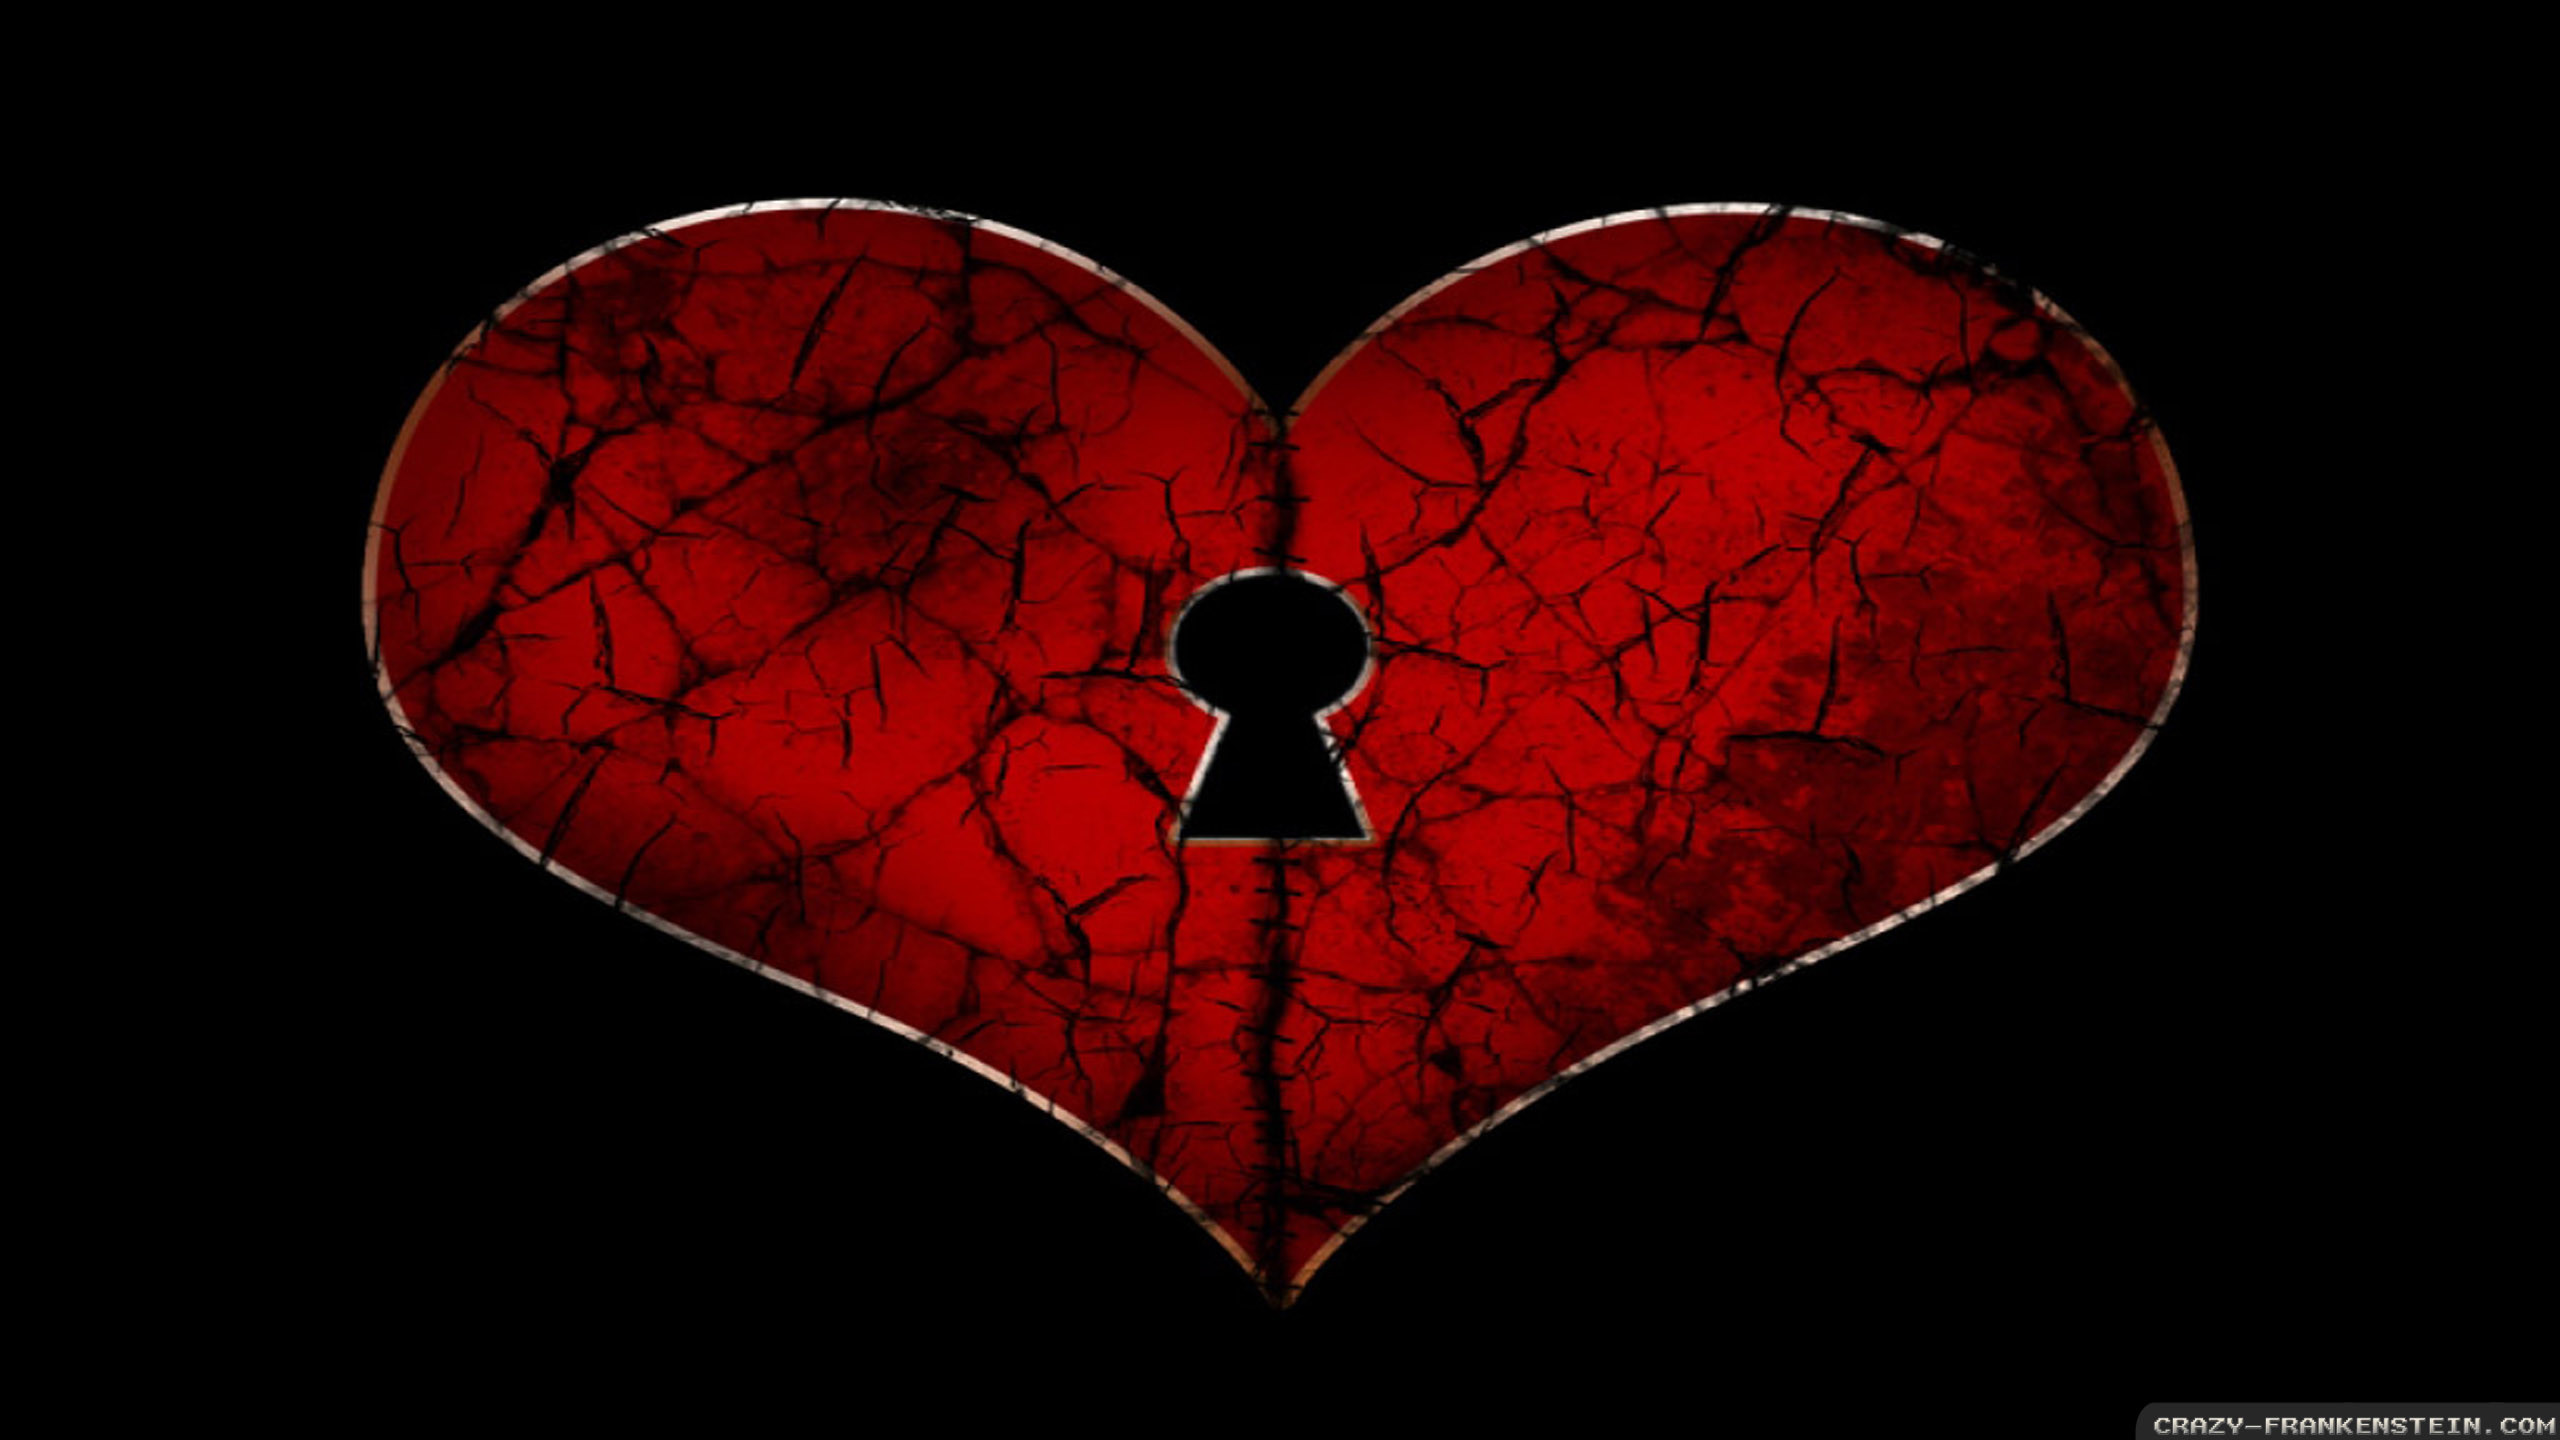 Broken Heart Sad Quotes With Wallpapers Images Hd 2016: Sad Heart Wallpapers (62+ Images